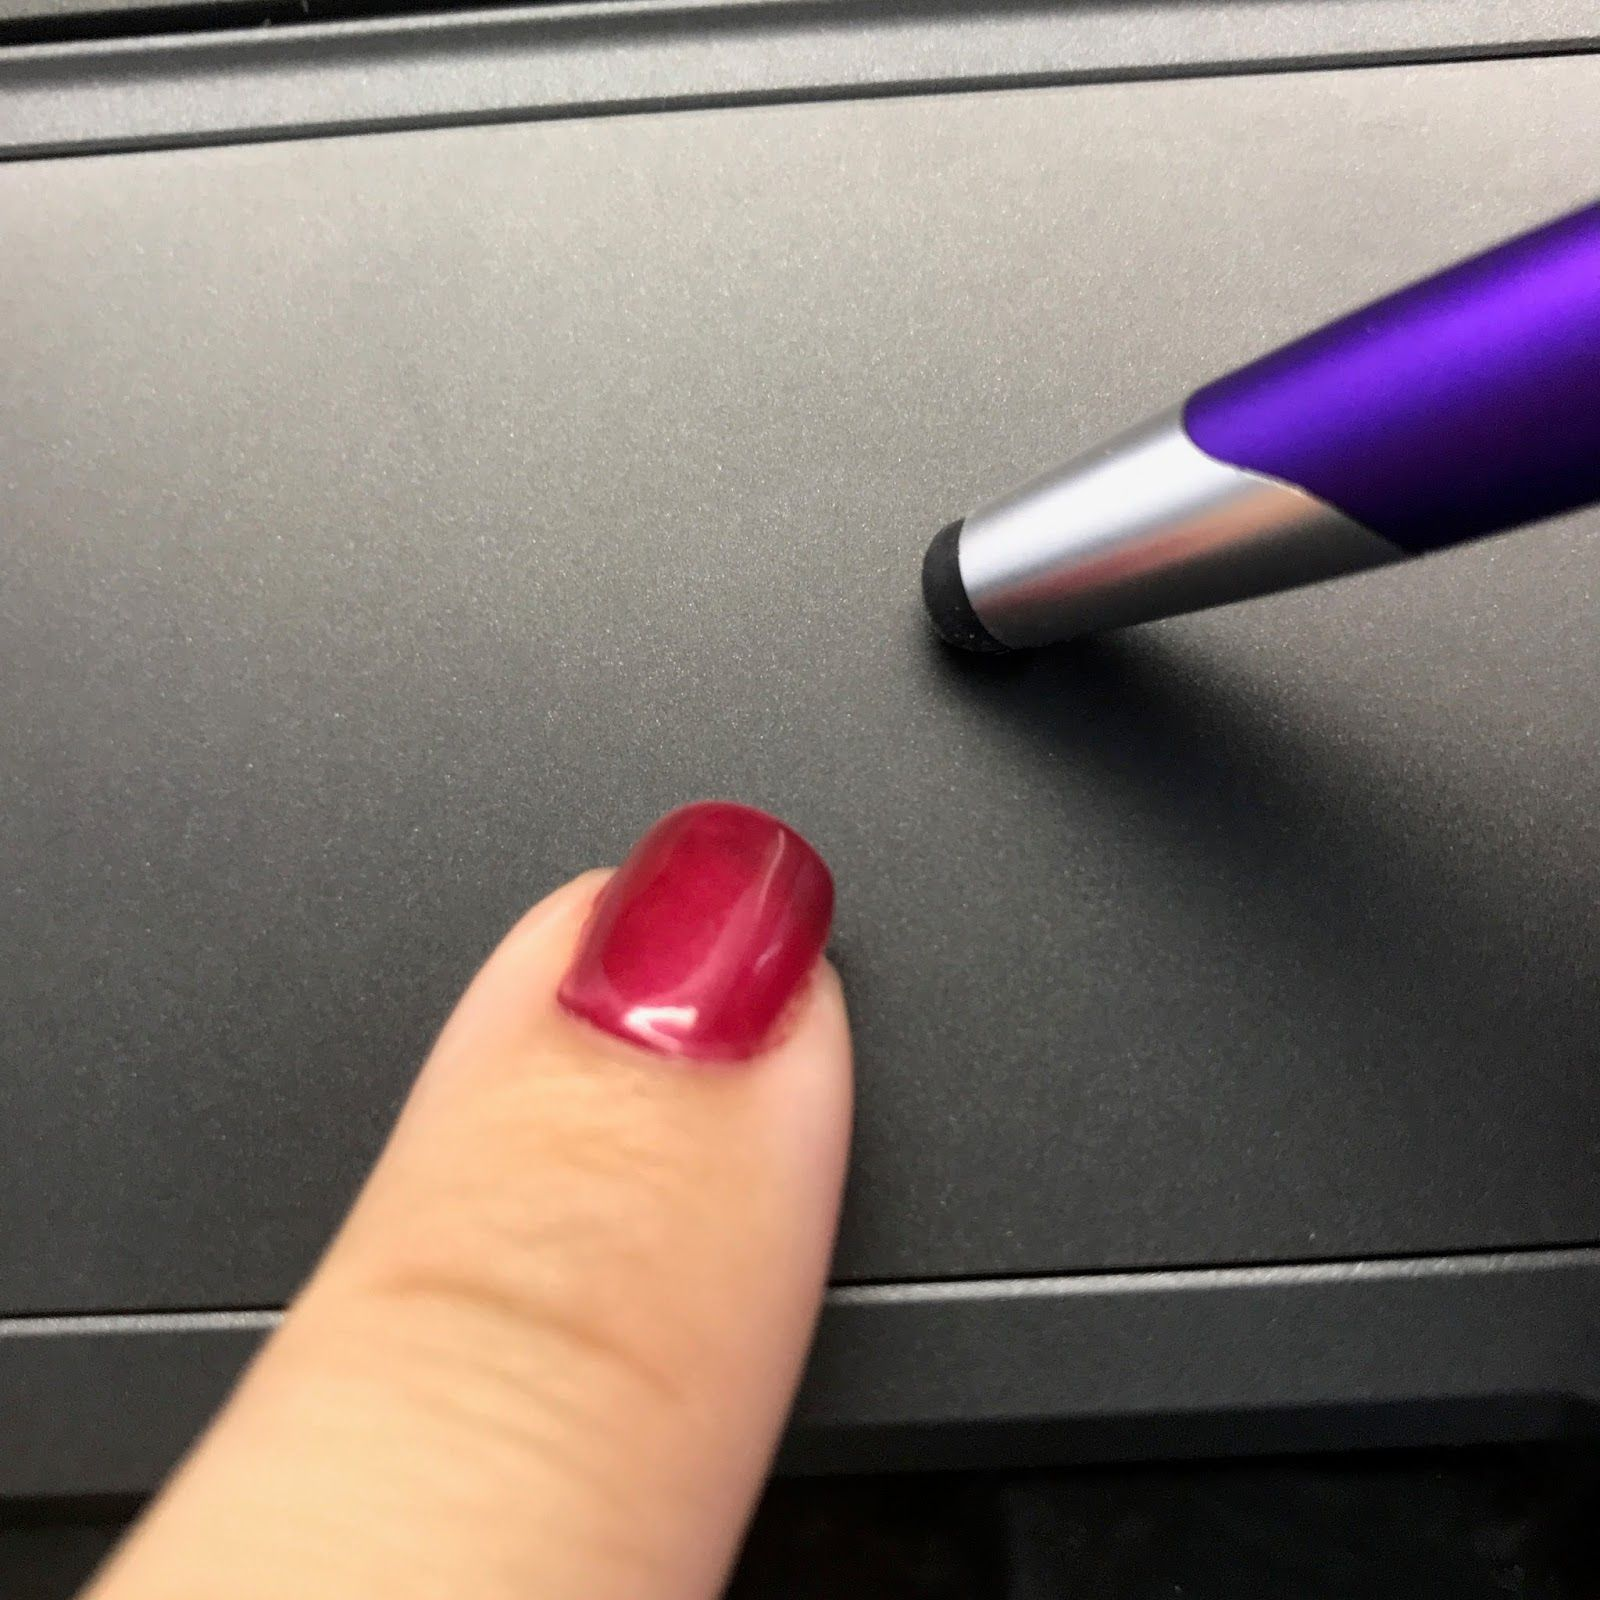 How To Screen Mirror Iphone To School Chromebook